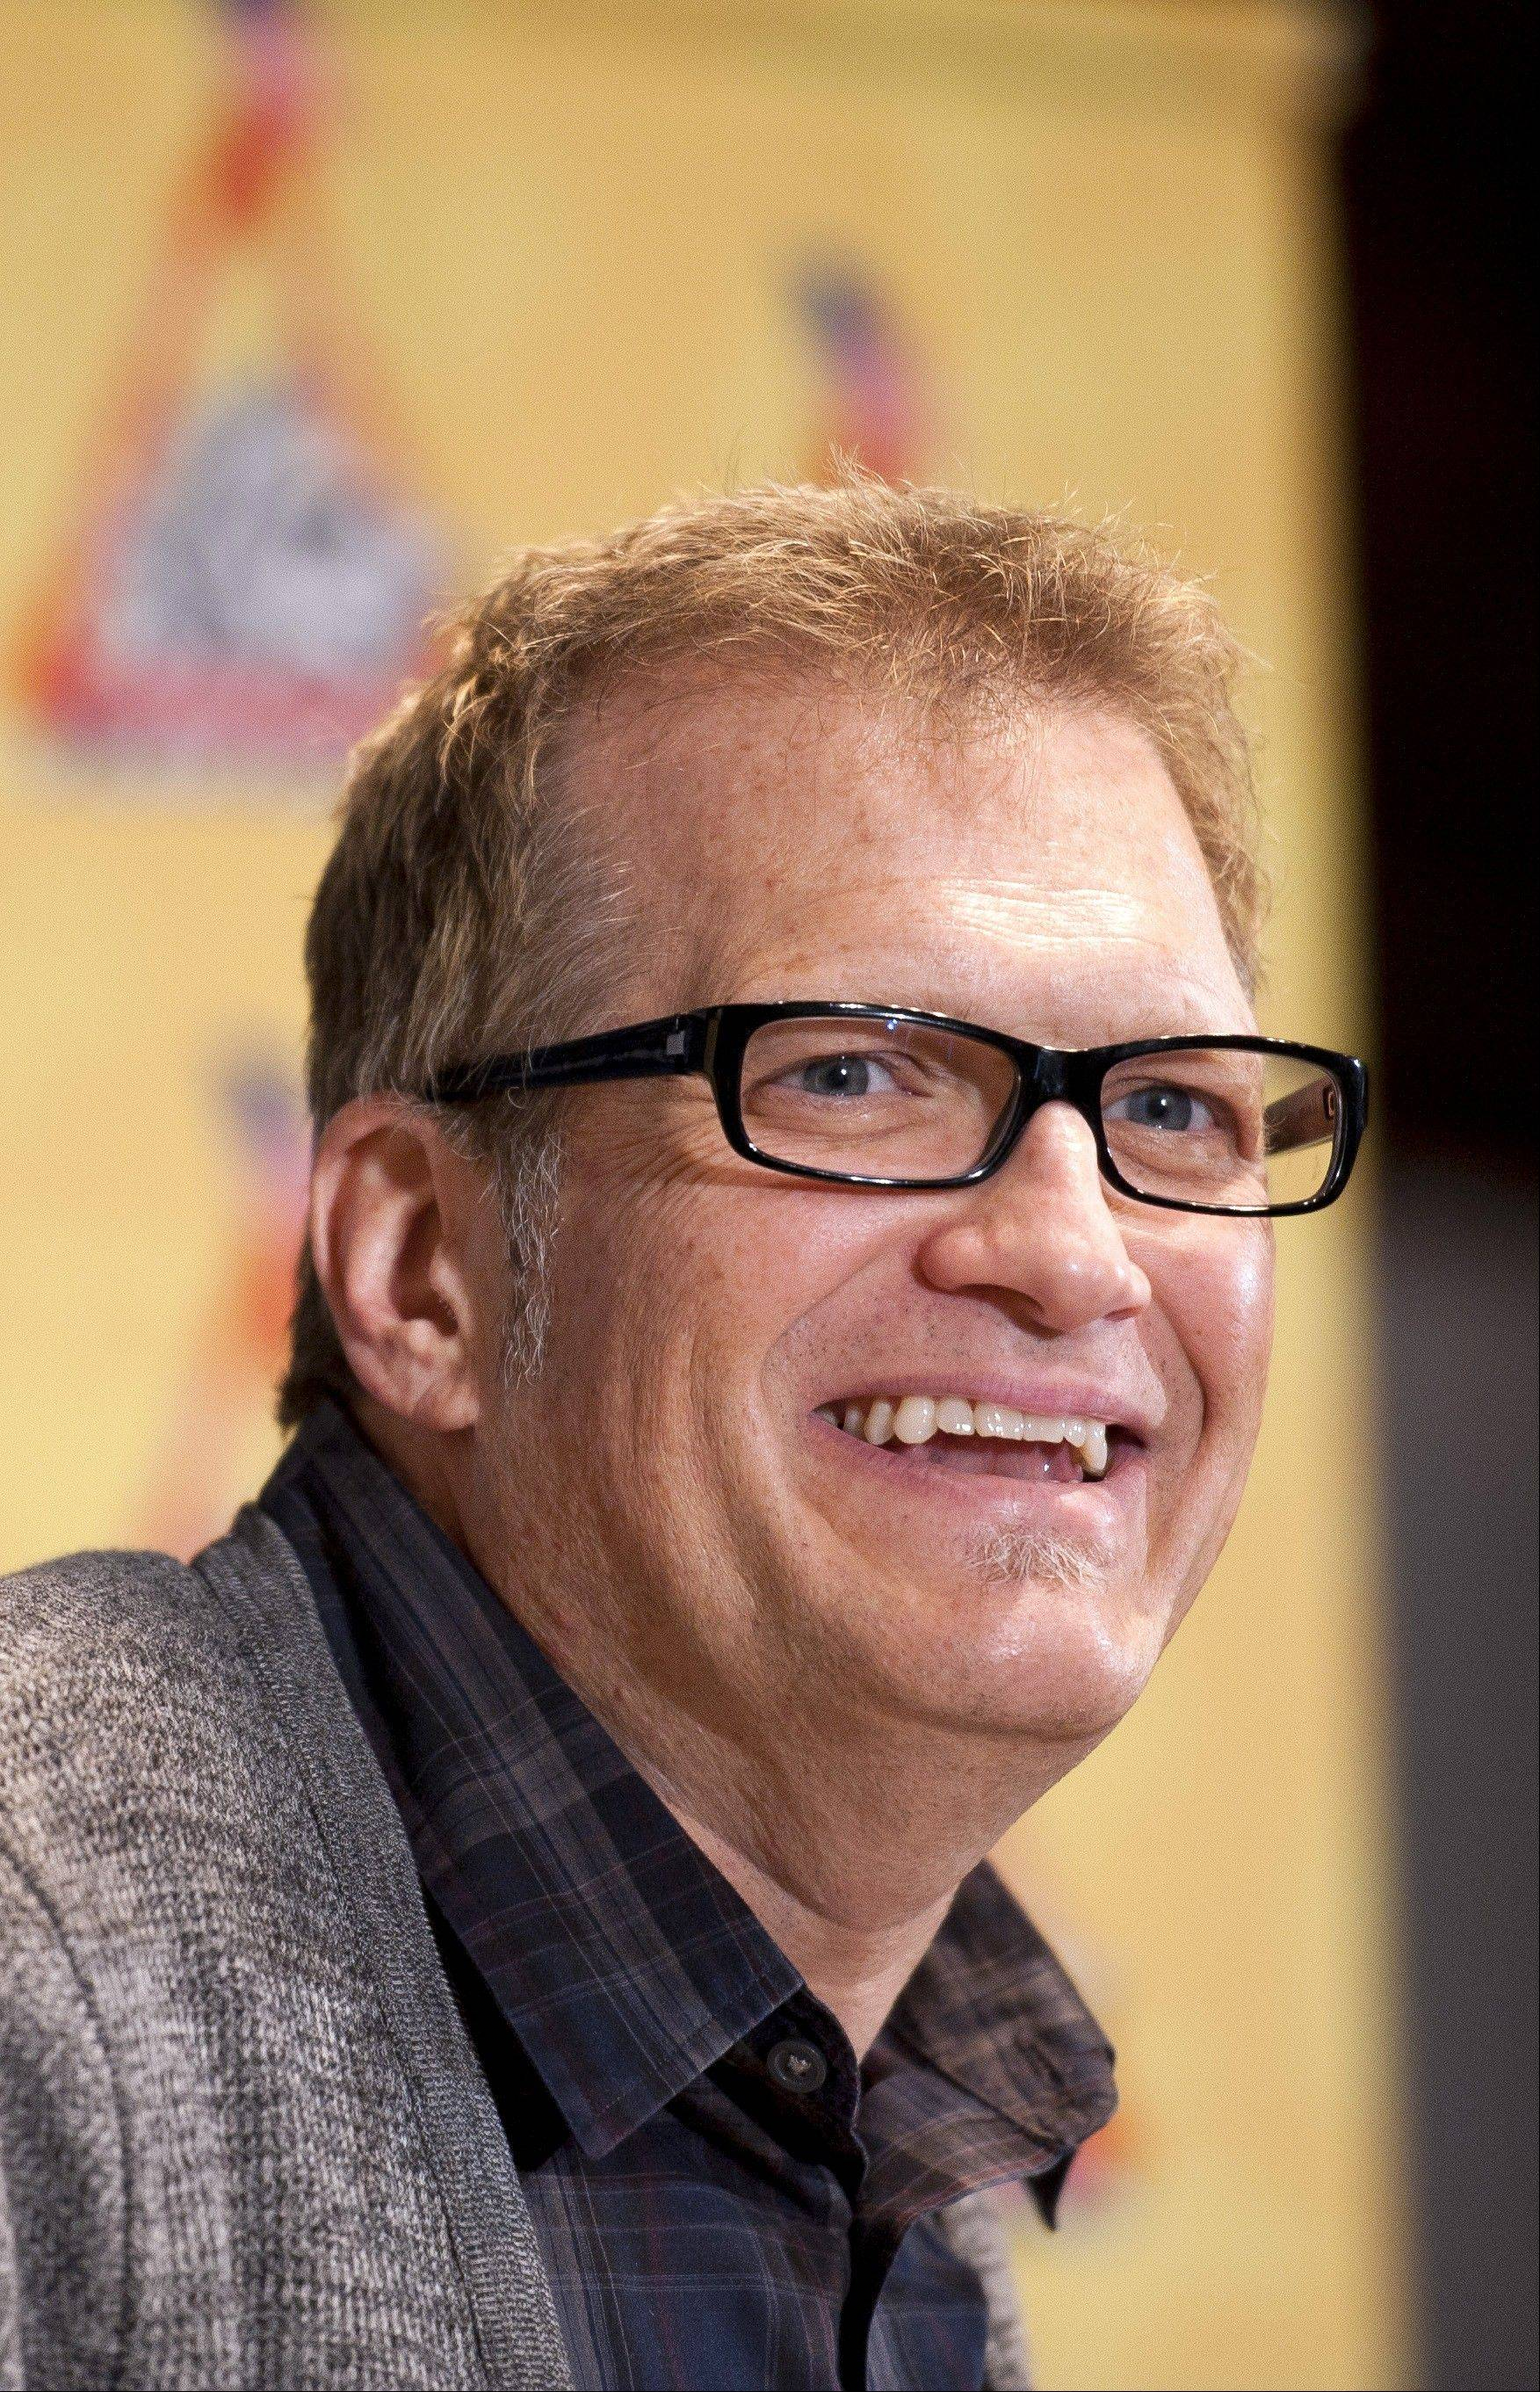 Comedian Drew Carey comes to Zanies at Pheasant Run Resort in St. Charles.